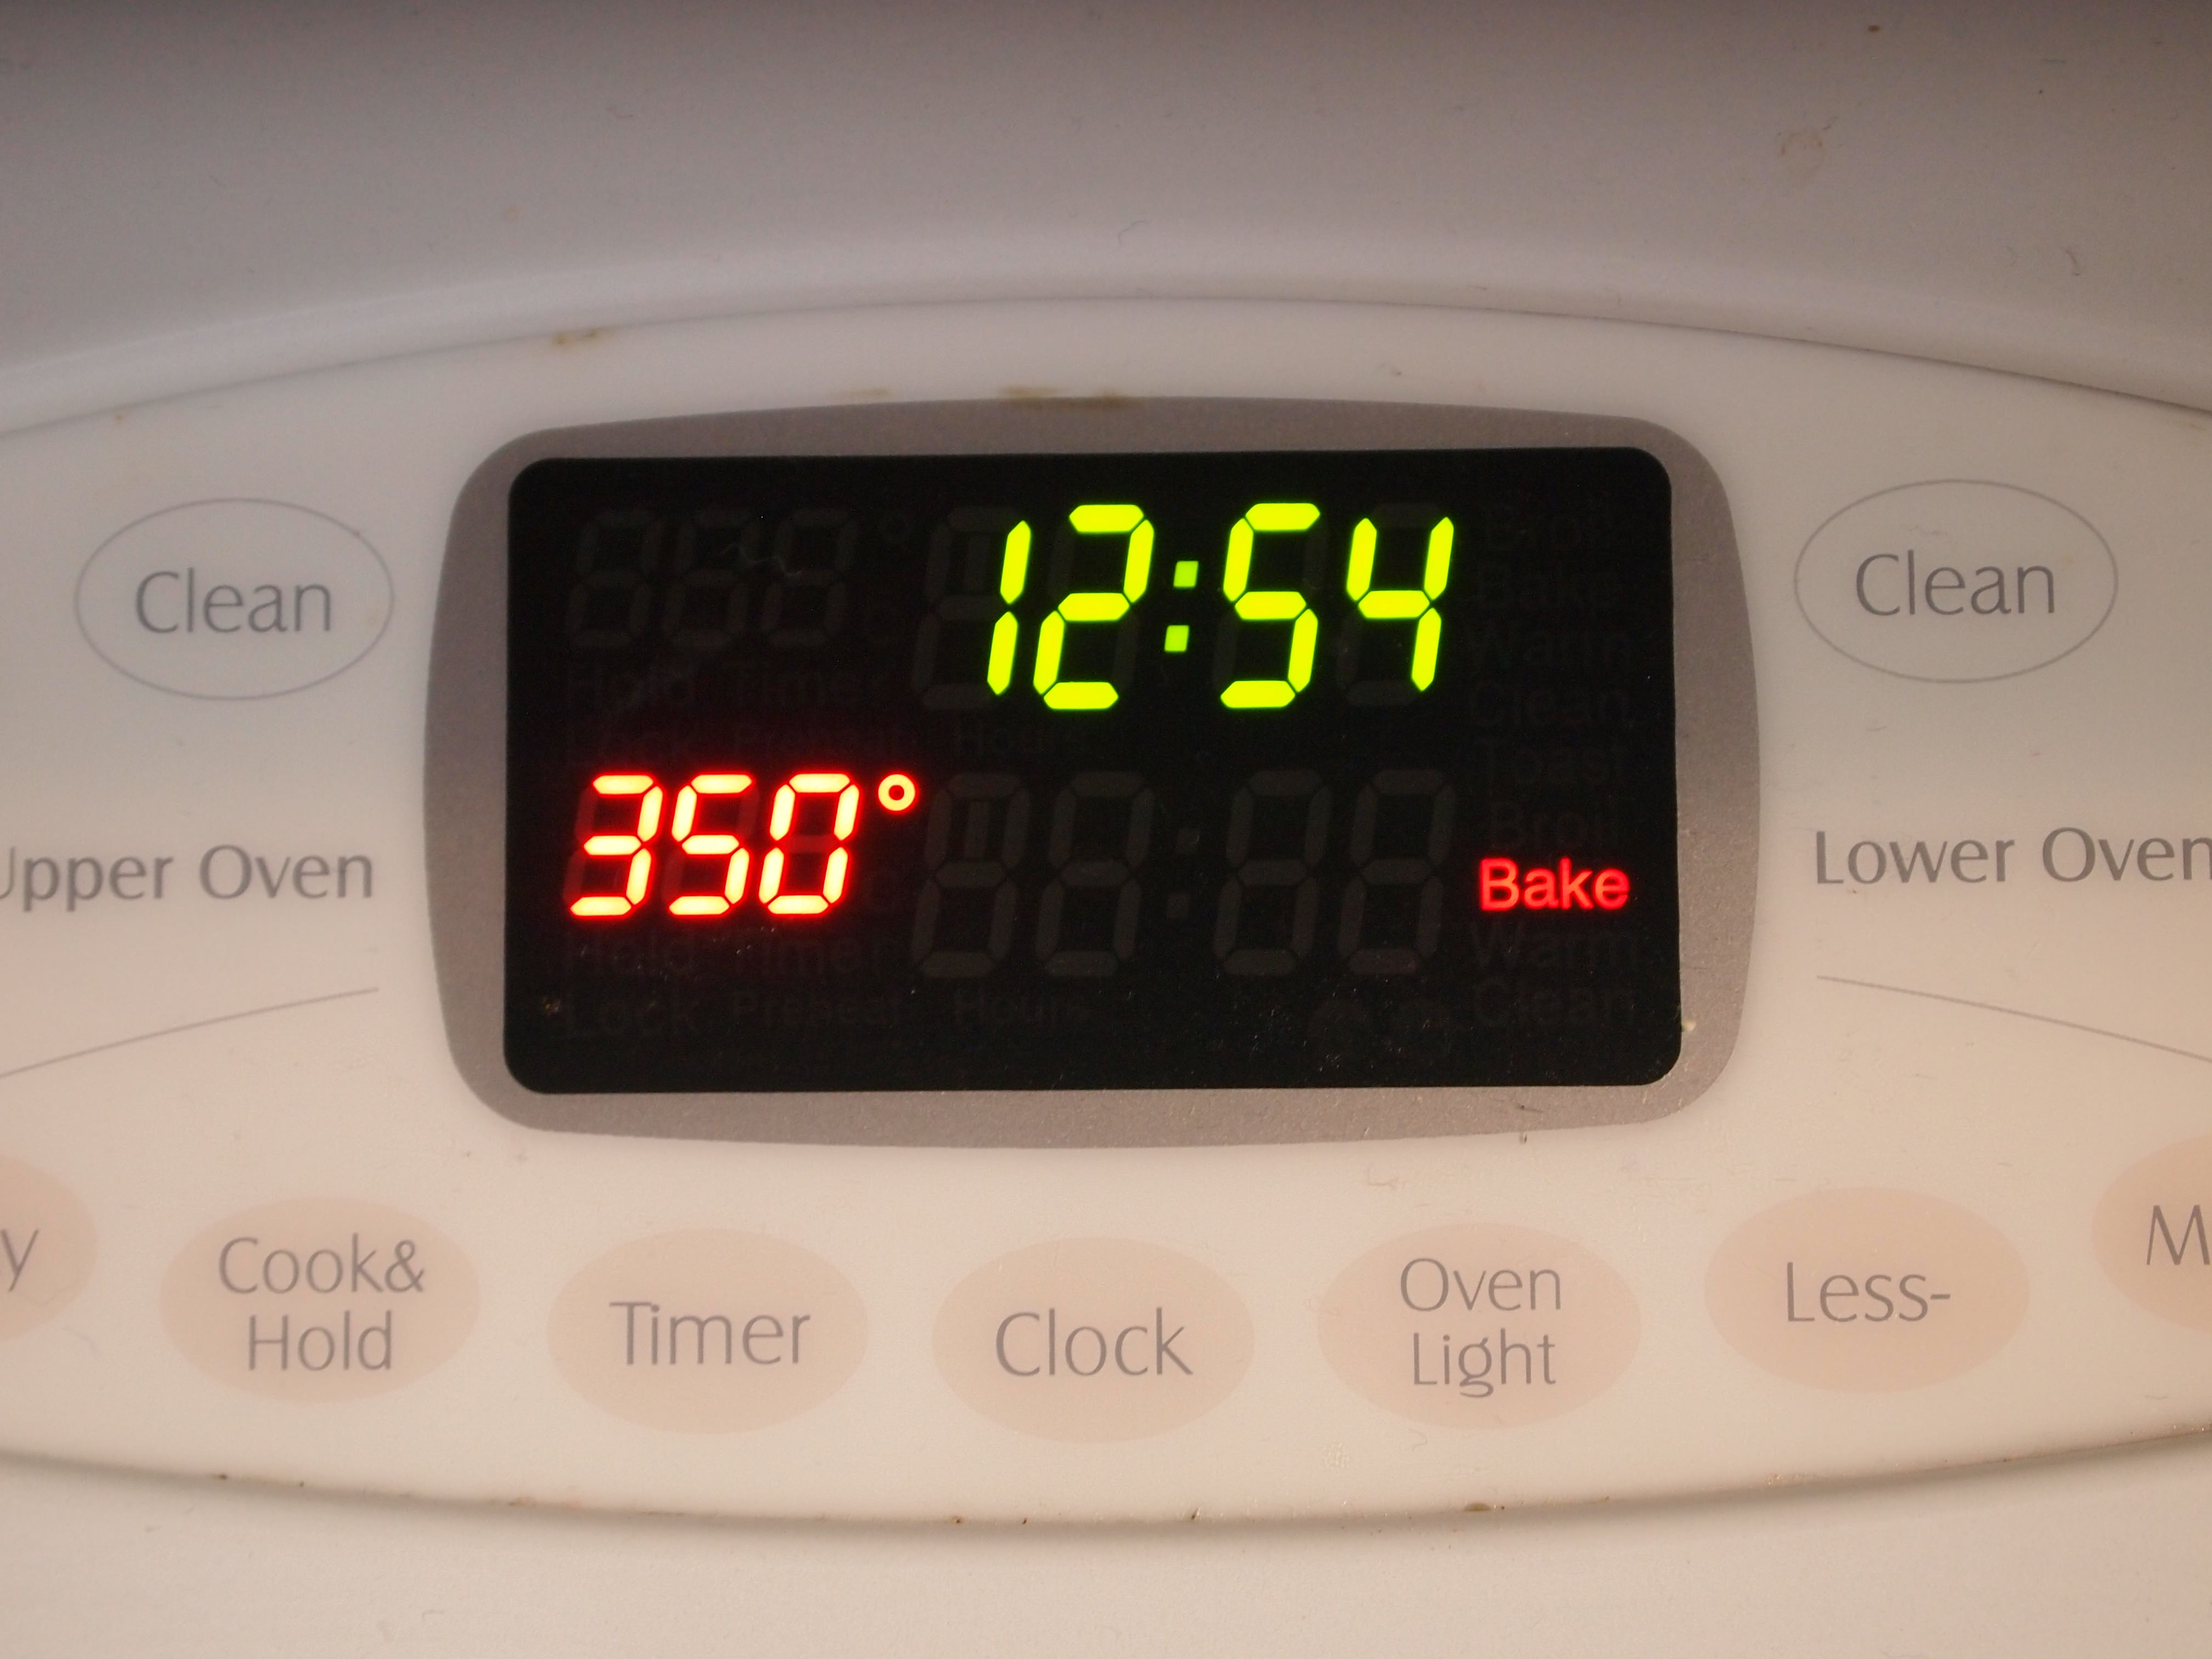 Preheat oven to 350 degrees meaning